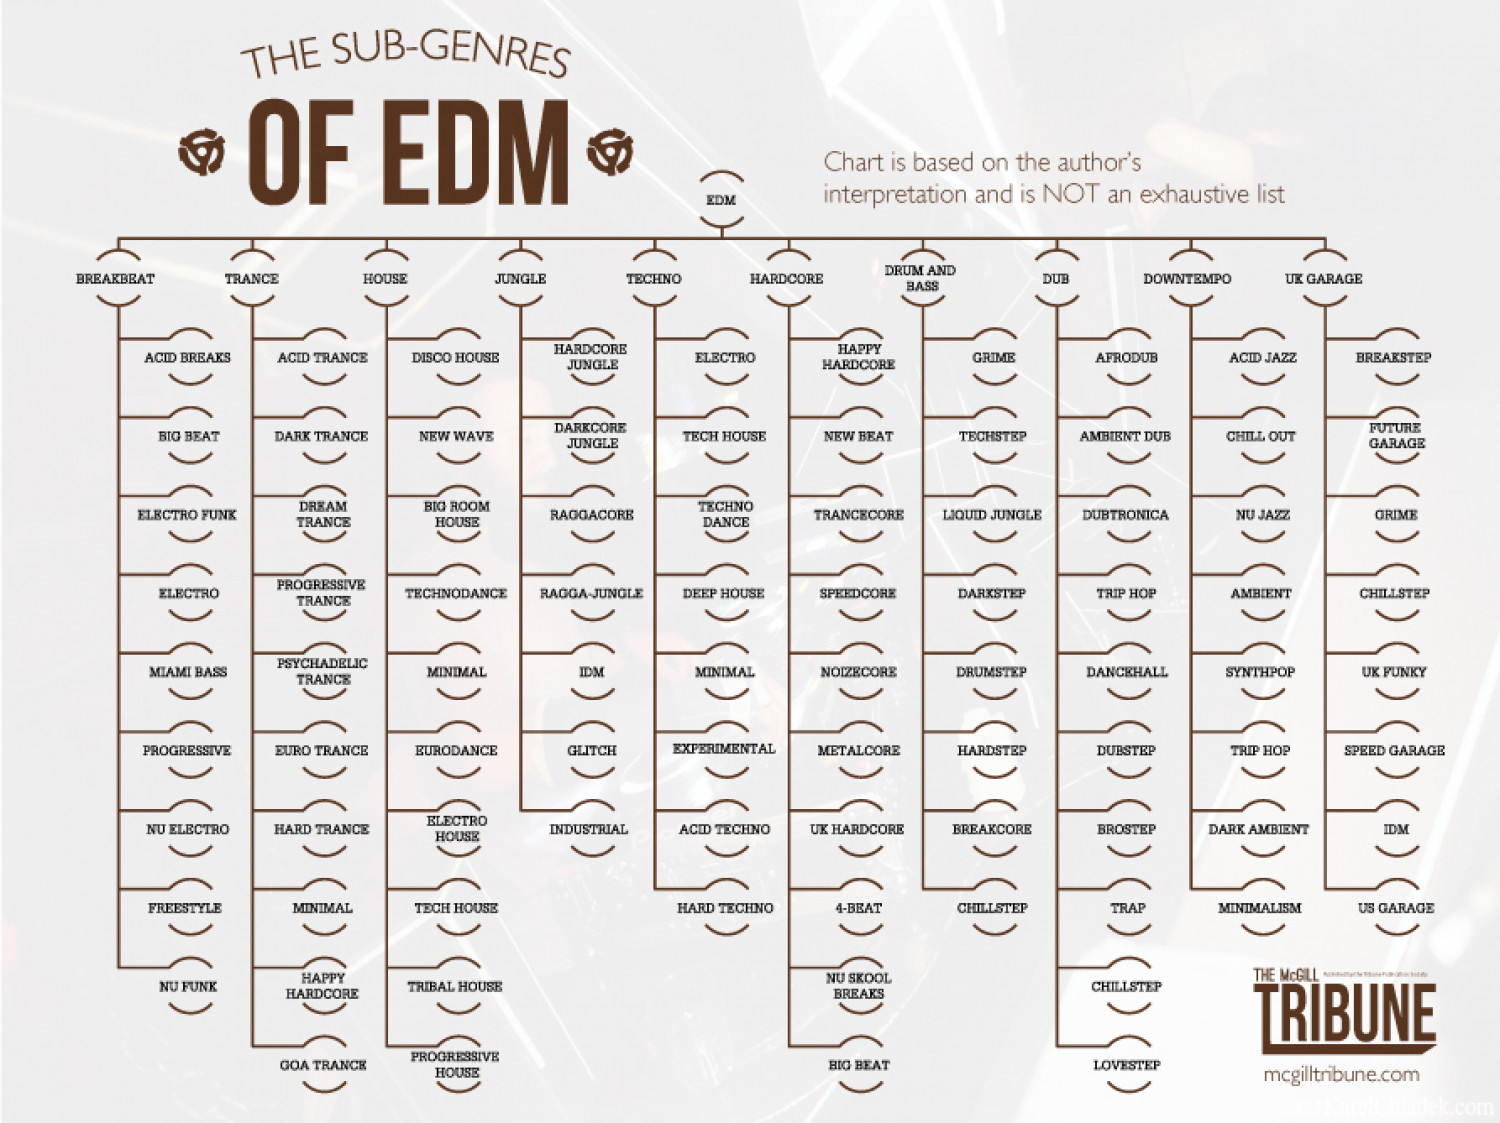 The Sub-Genres of EDM Infographic